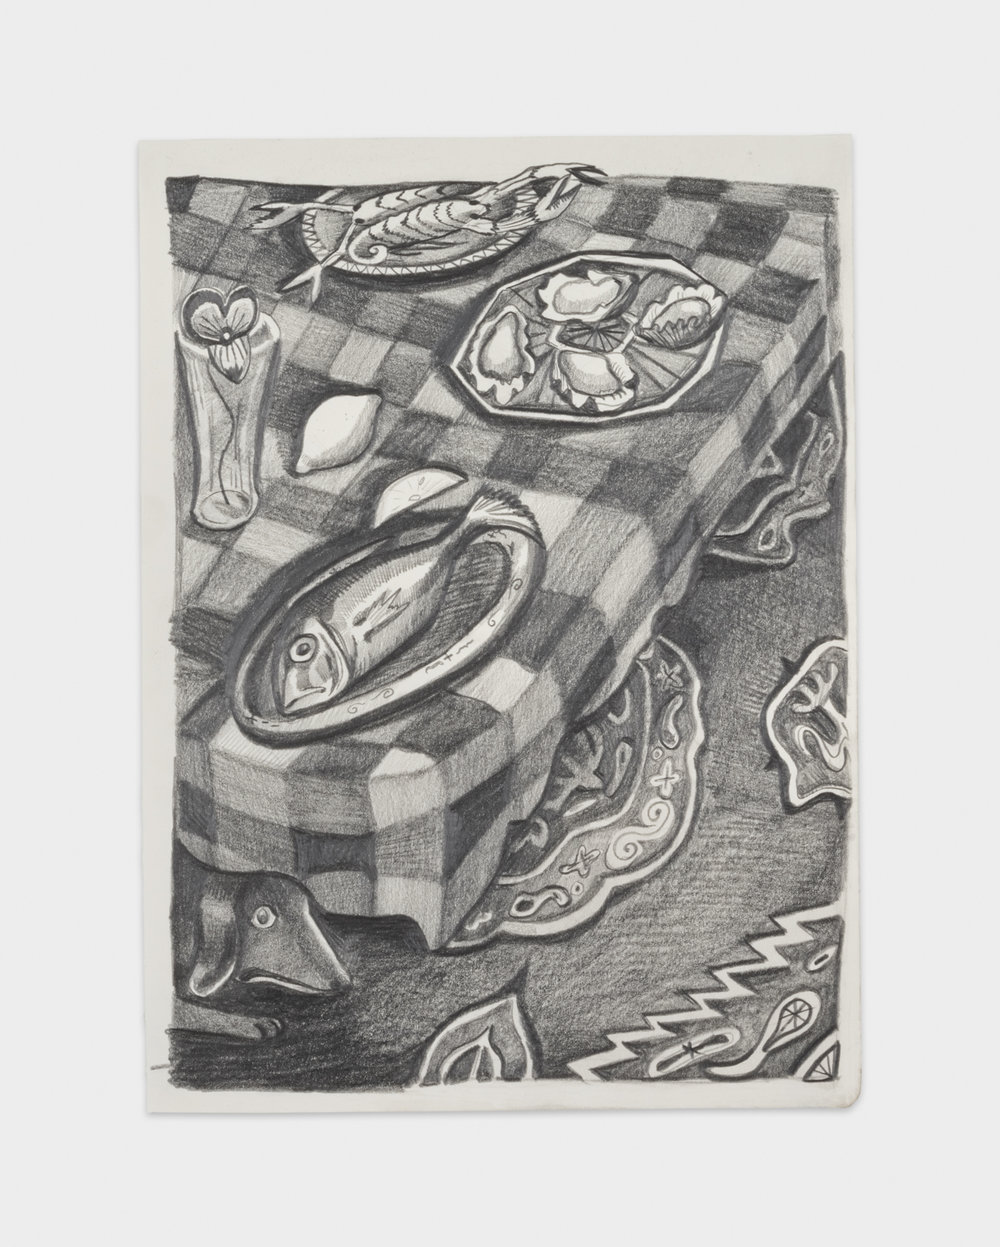 Nikki Maloof  Small Seafood Buffet  2018 Graphite on paper 11 ¾h x 8 ½w in NM027